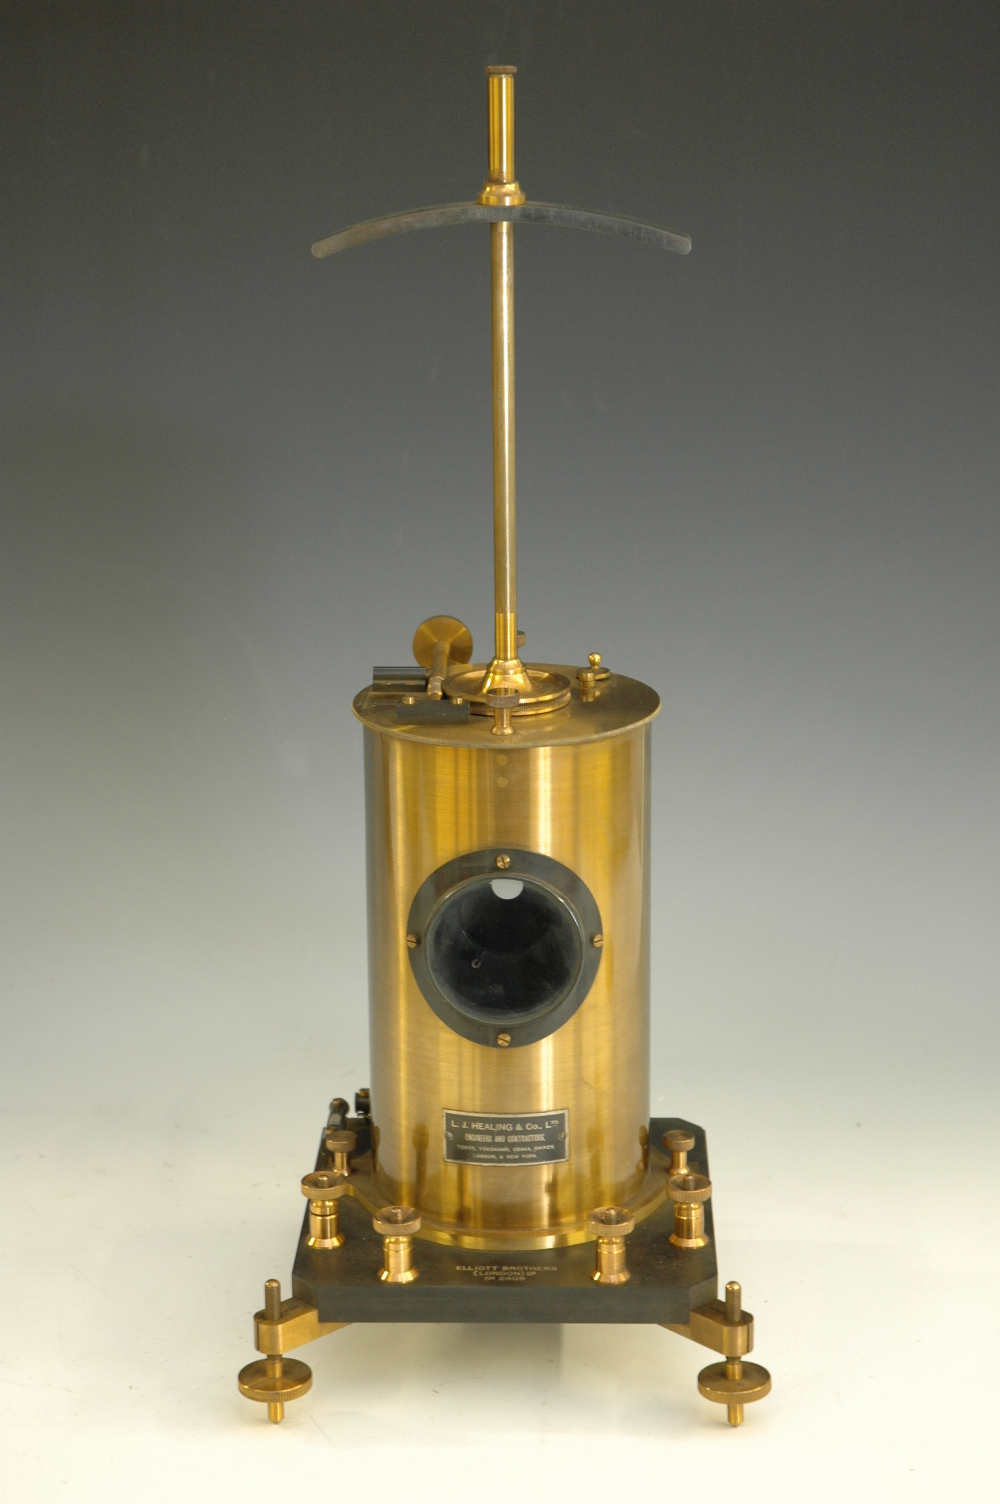 preview image for Reflecting Galvanometer, by L. J. Healing & Co. Ltd and Elliott Brothers (London) Ltd., Early 20th Century